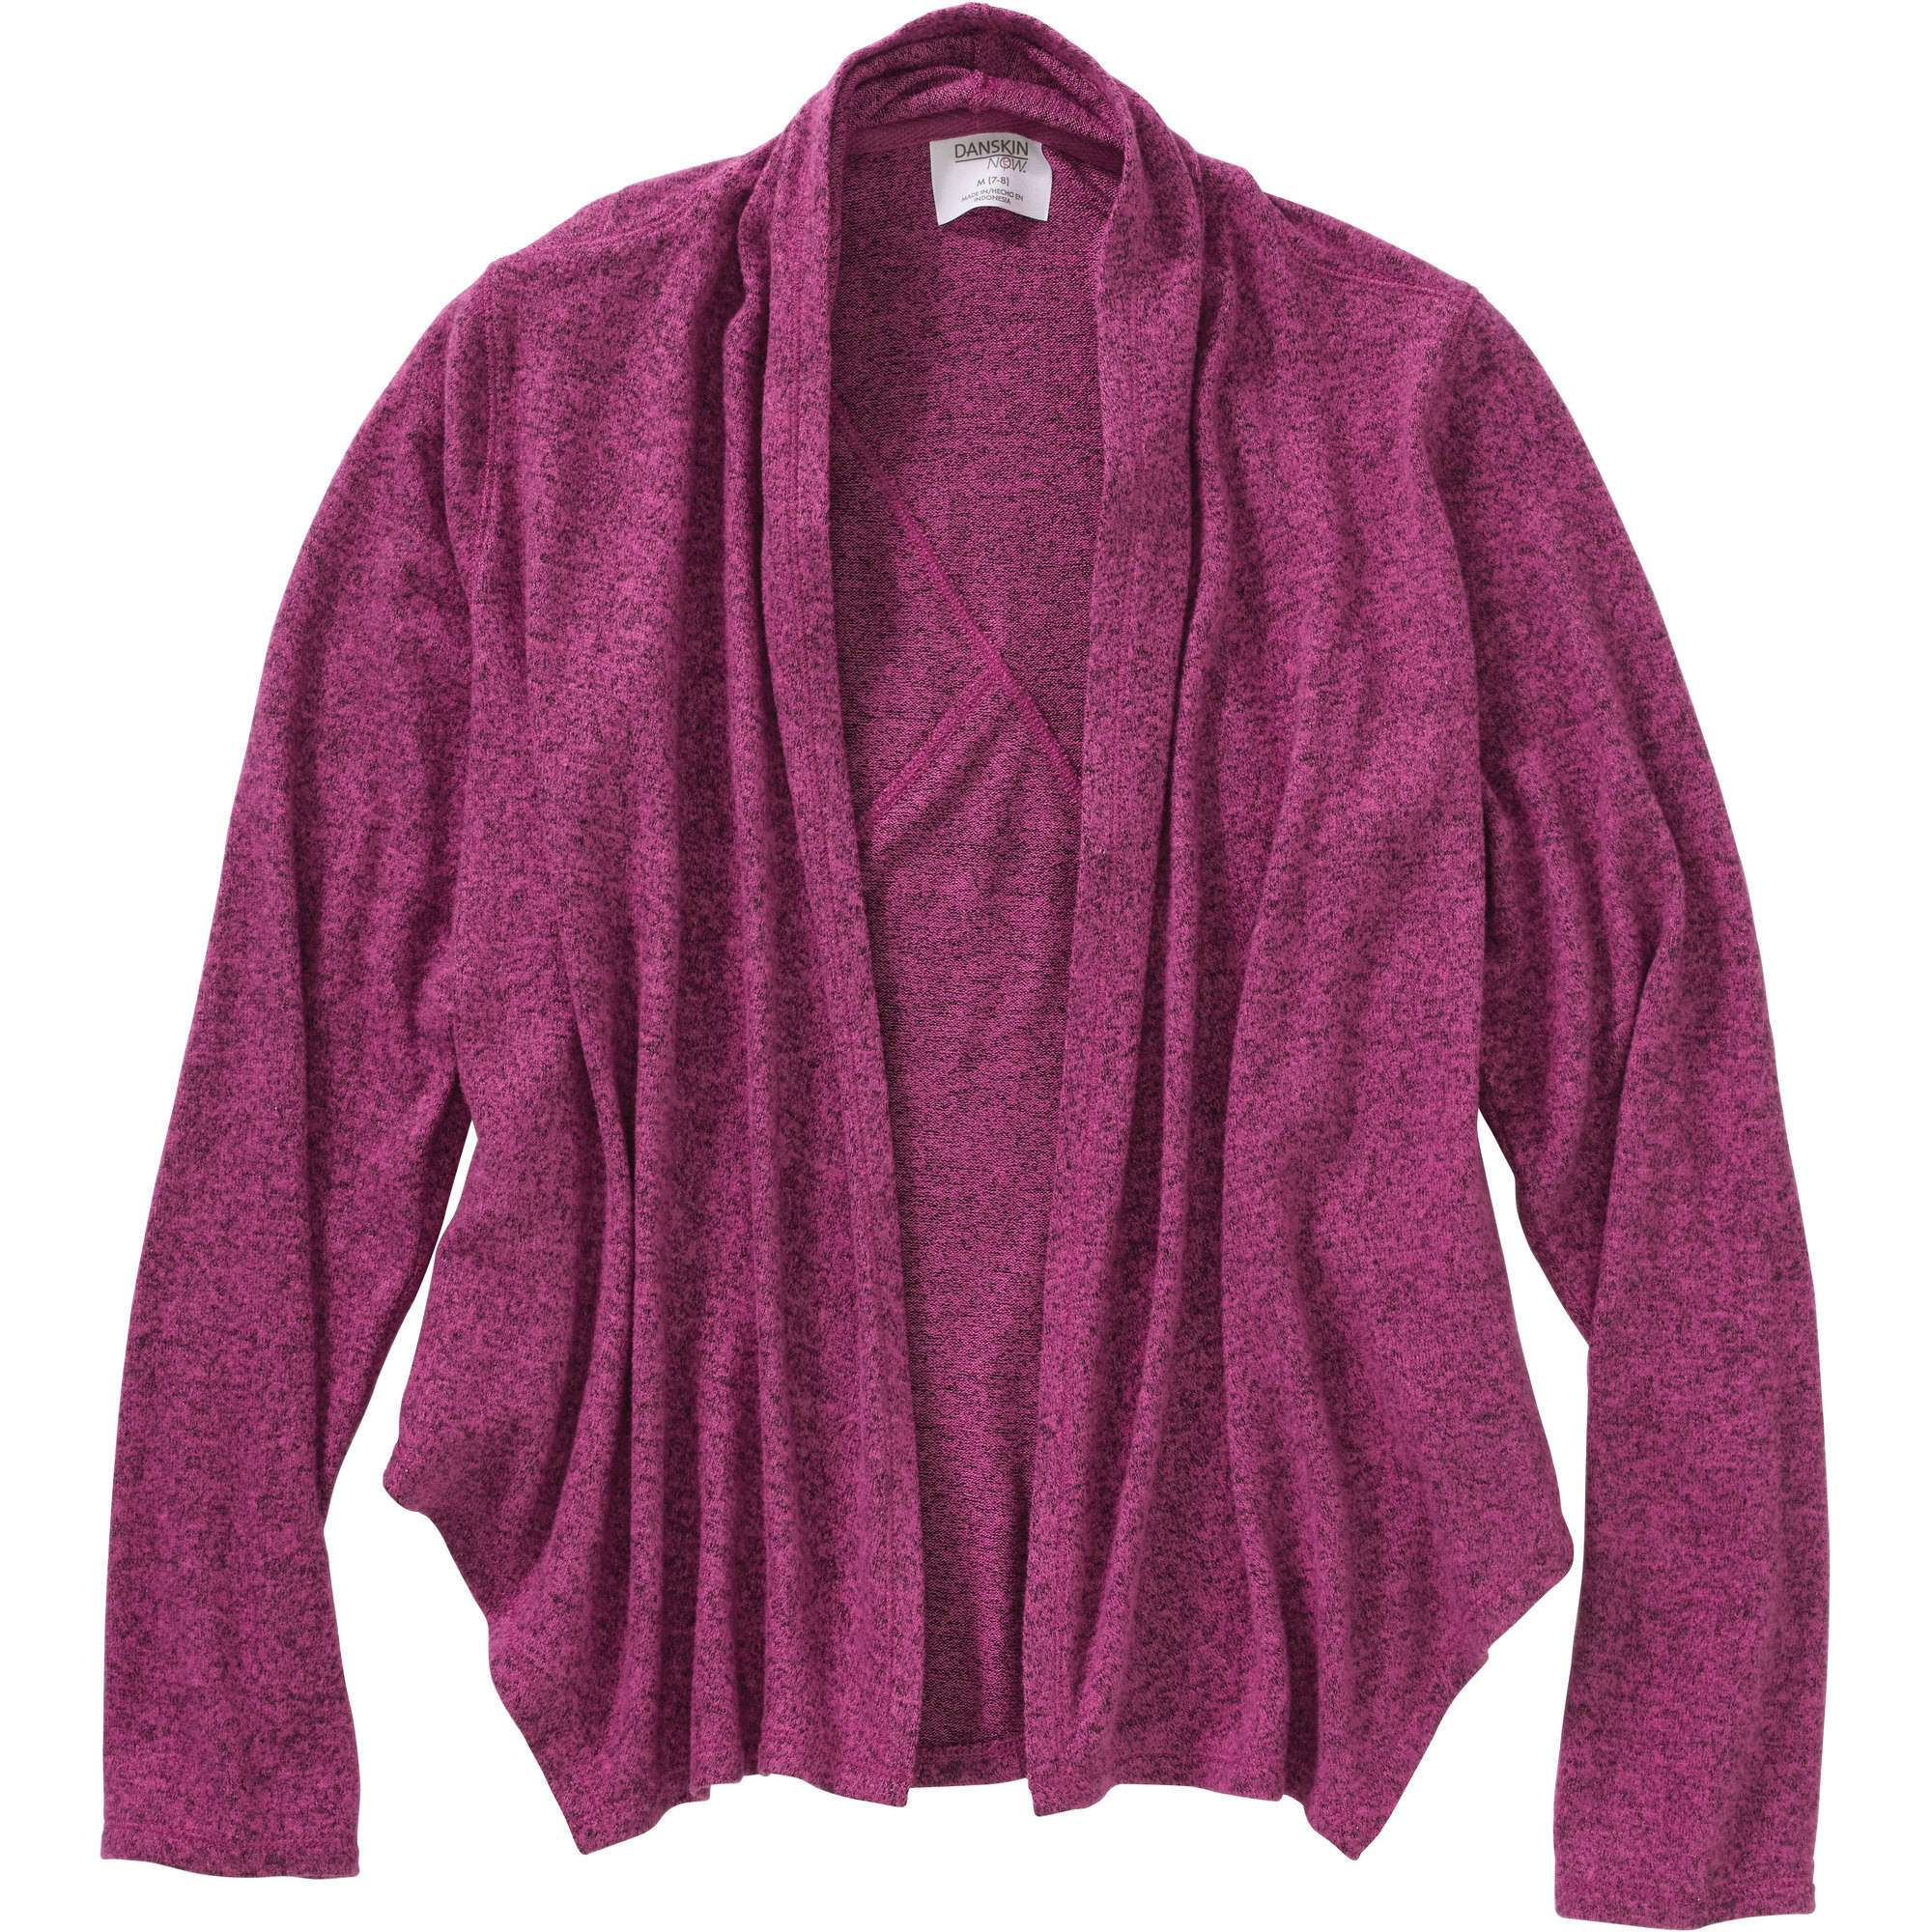 Girls Super Soft Fly Away Cardigan